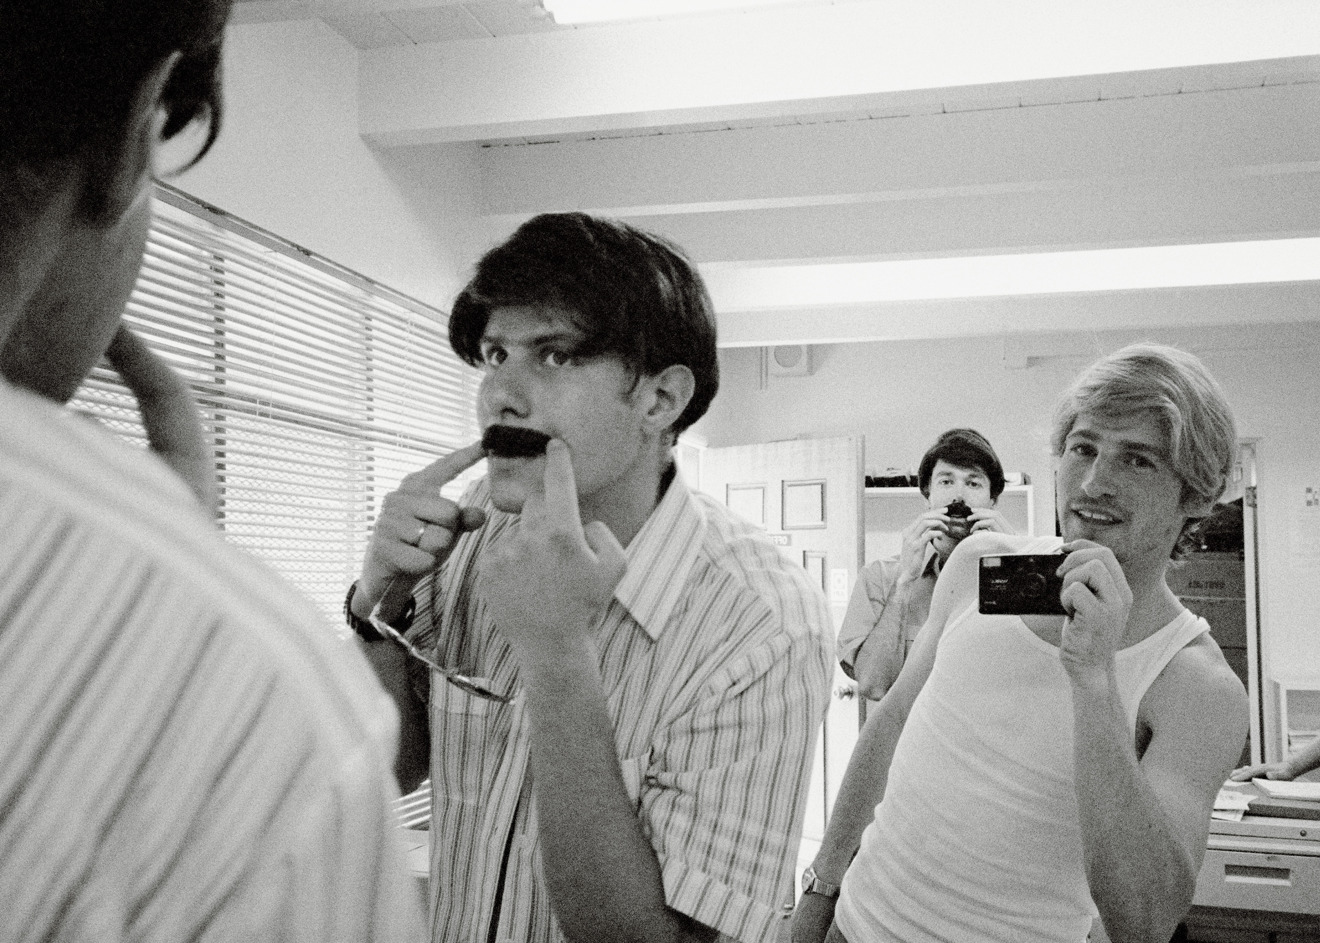 Mike Diamond, Spike Jonze and Adam Yauch prepare for the Sabotage music video in a scene from Beastie Boys Story, premiering globally on Apple TV+ on April 24